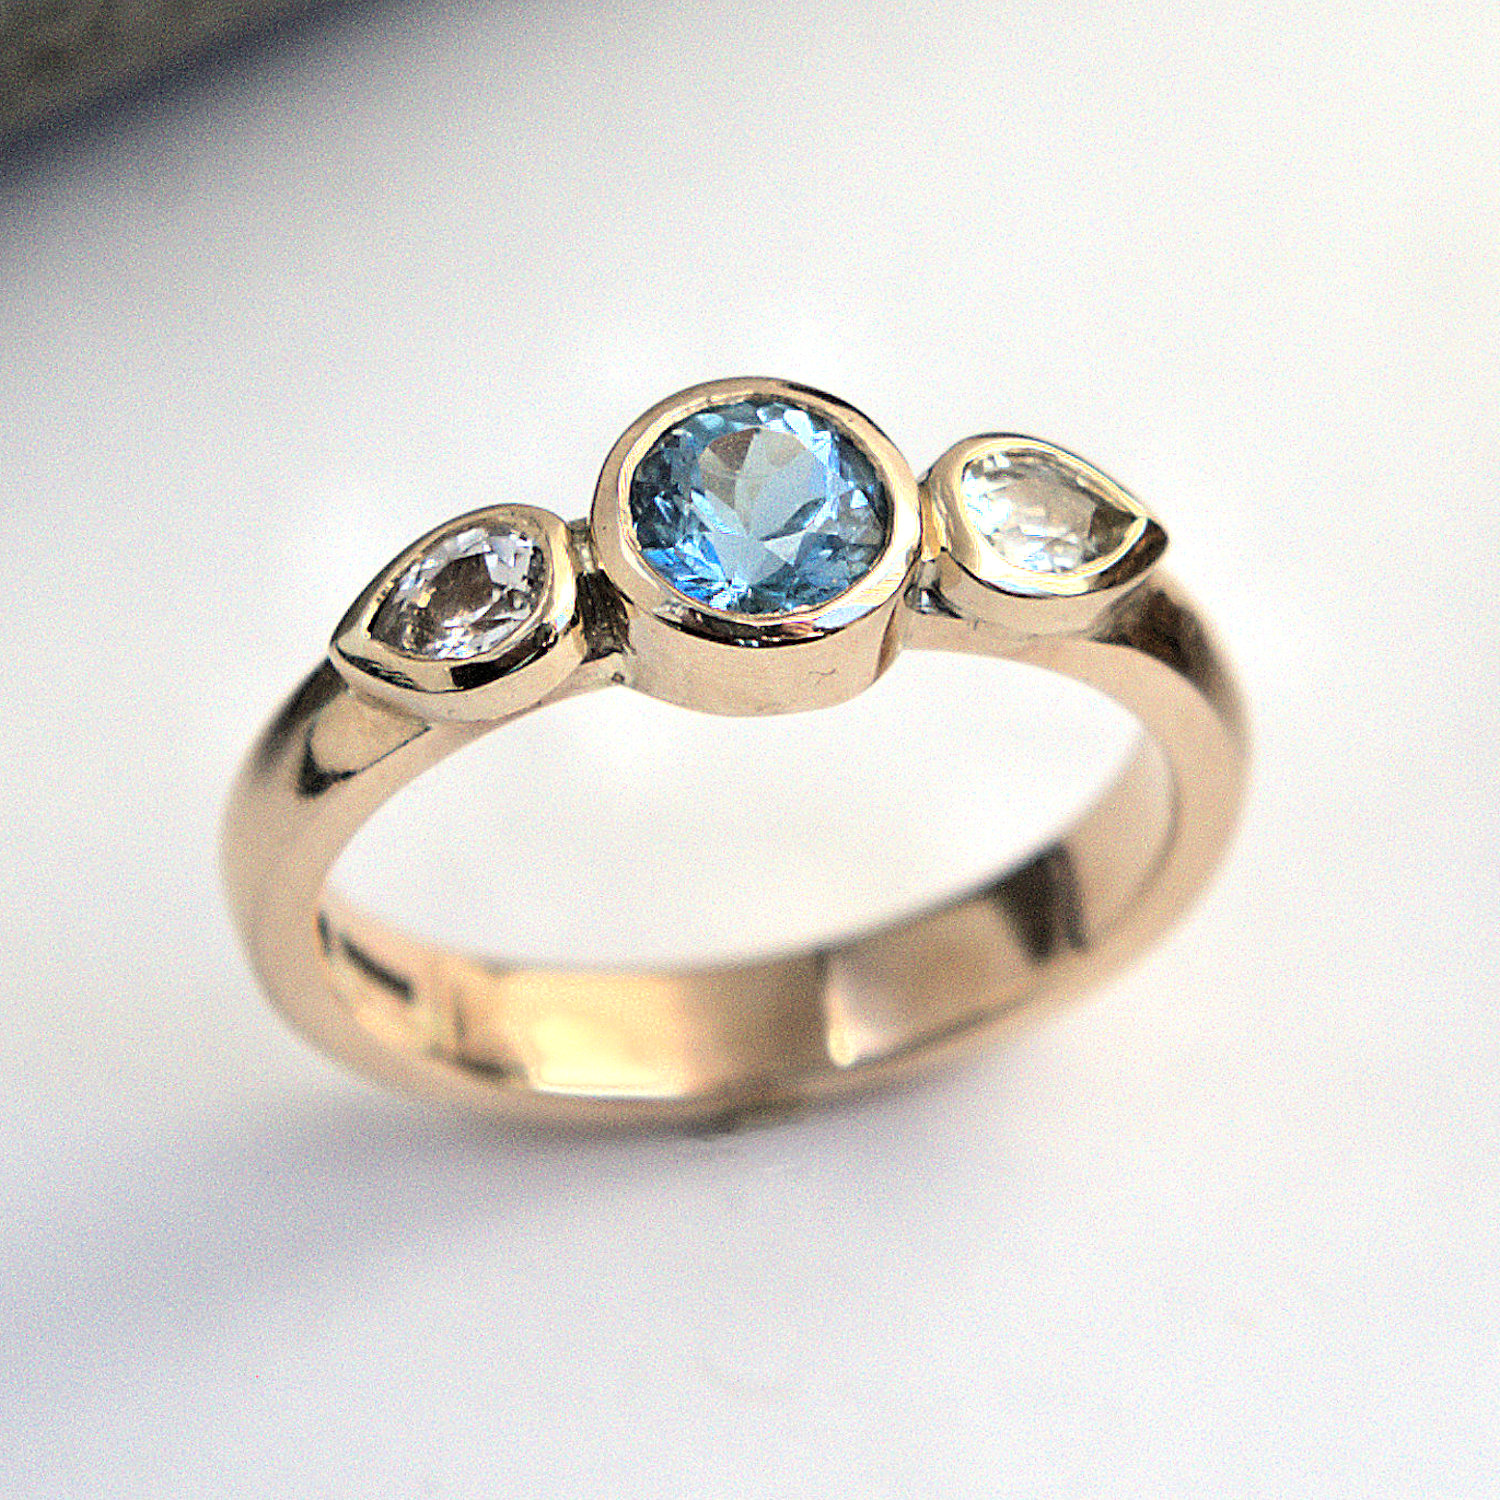 Aquamarine and white sapphire ring